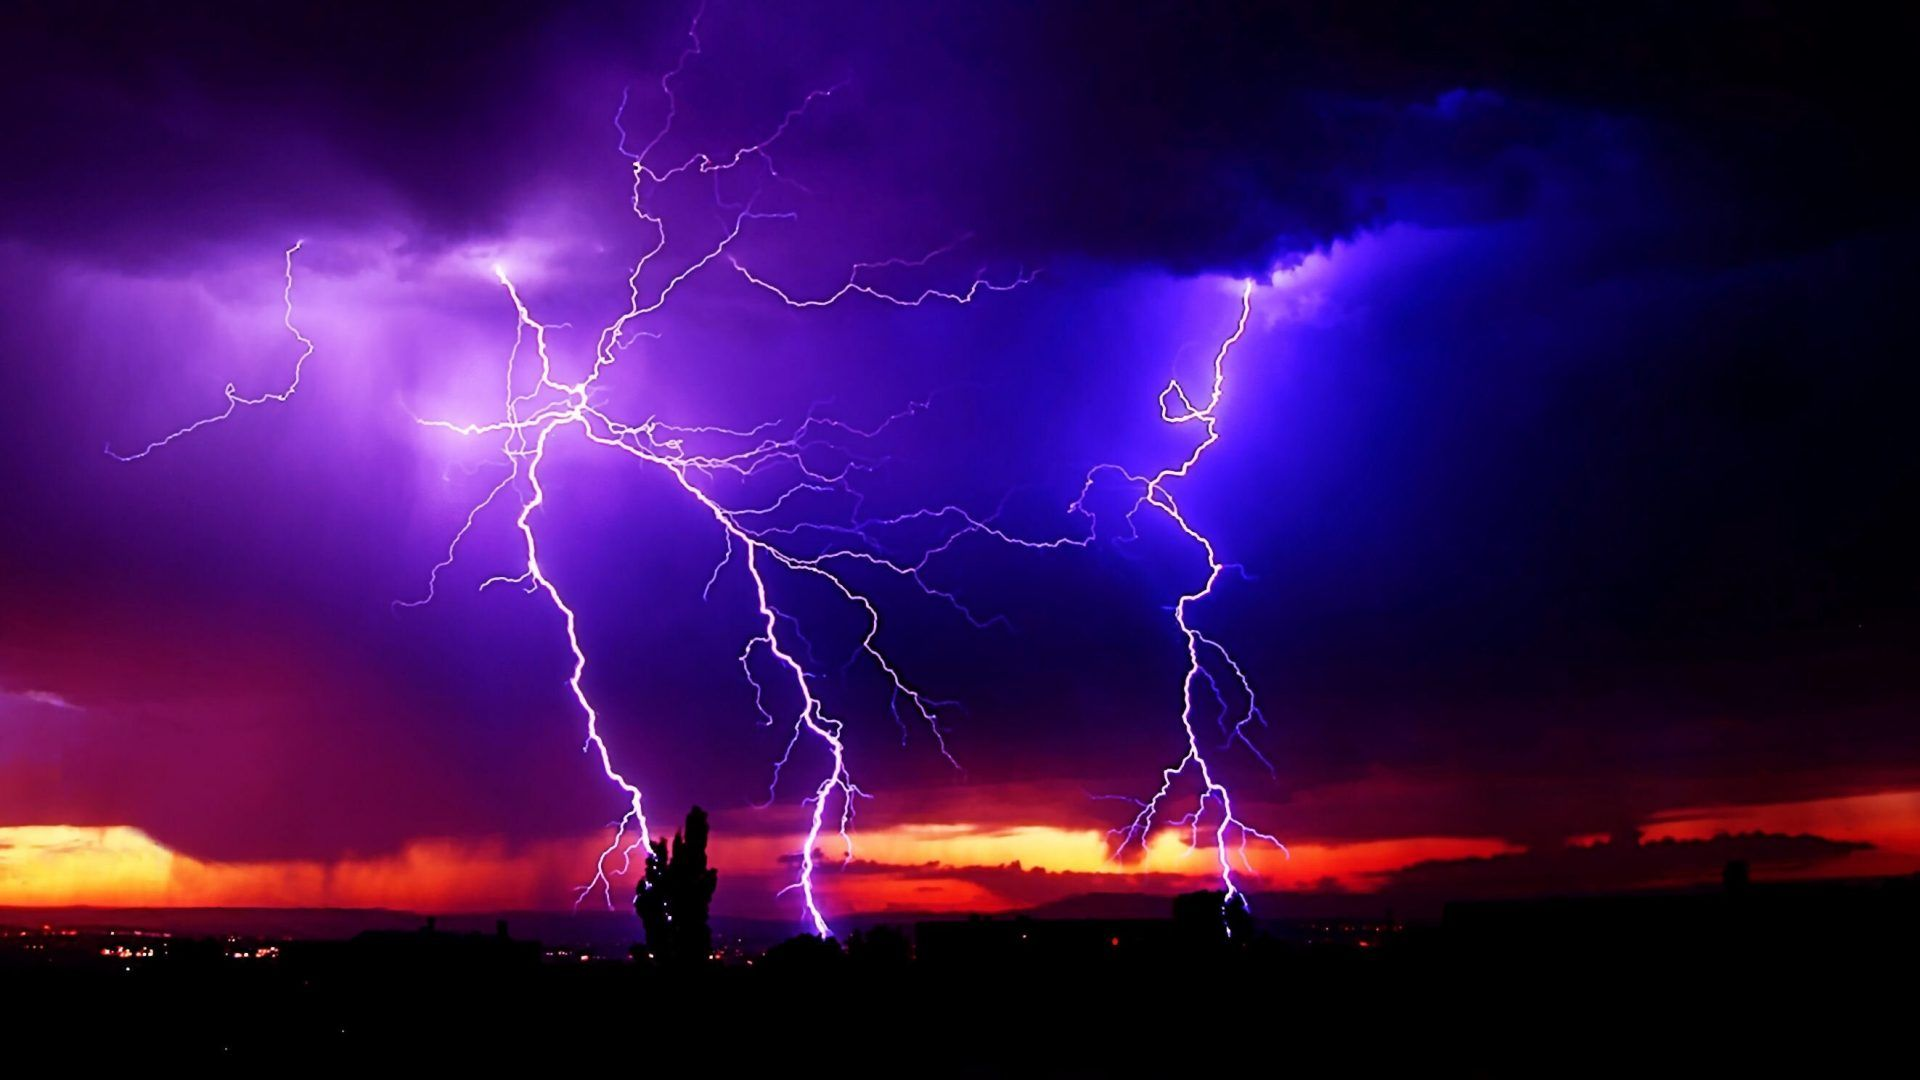 Sky Weather Sky Clouds Nature Storm Lightning Rain Full